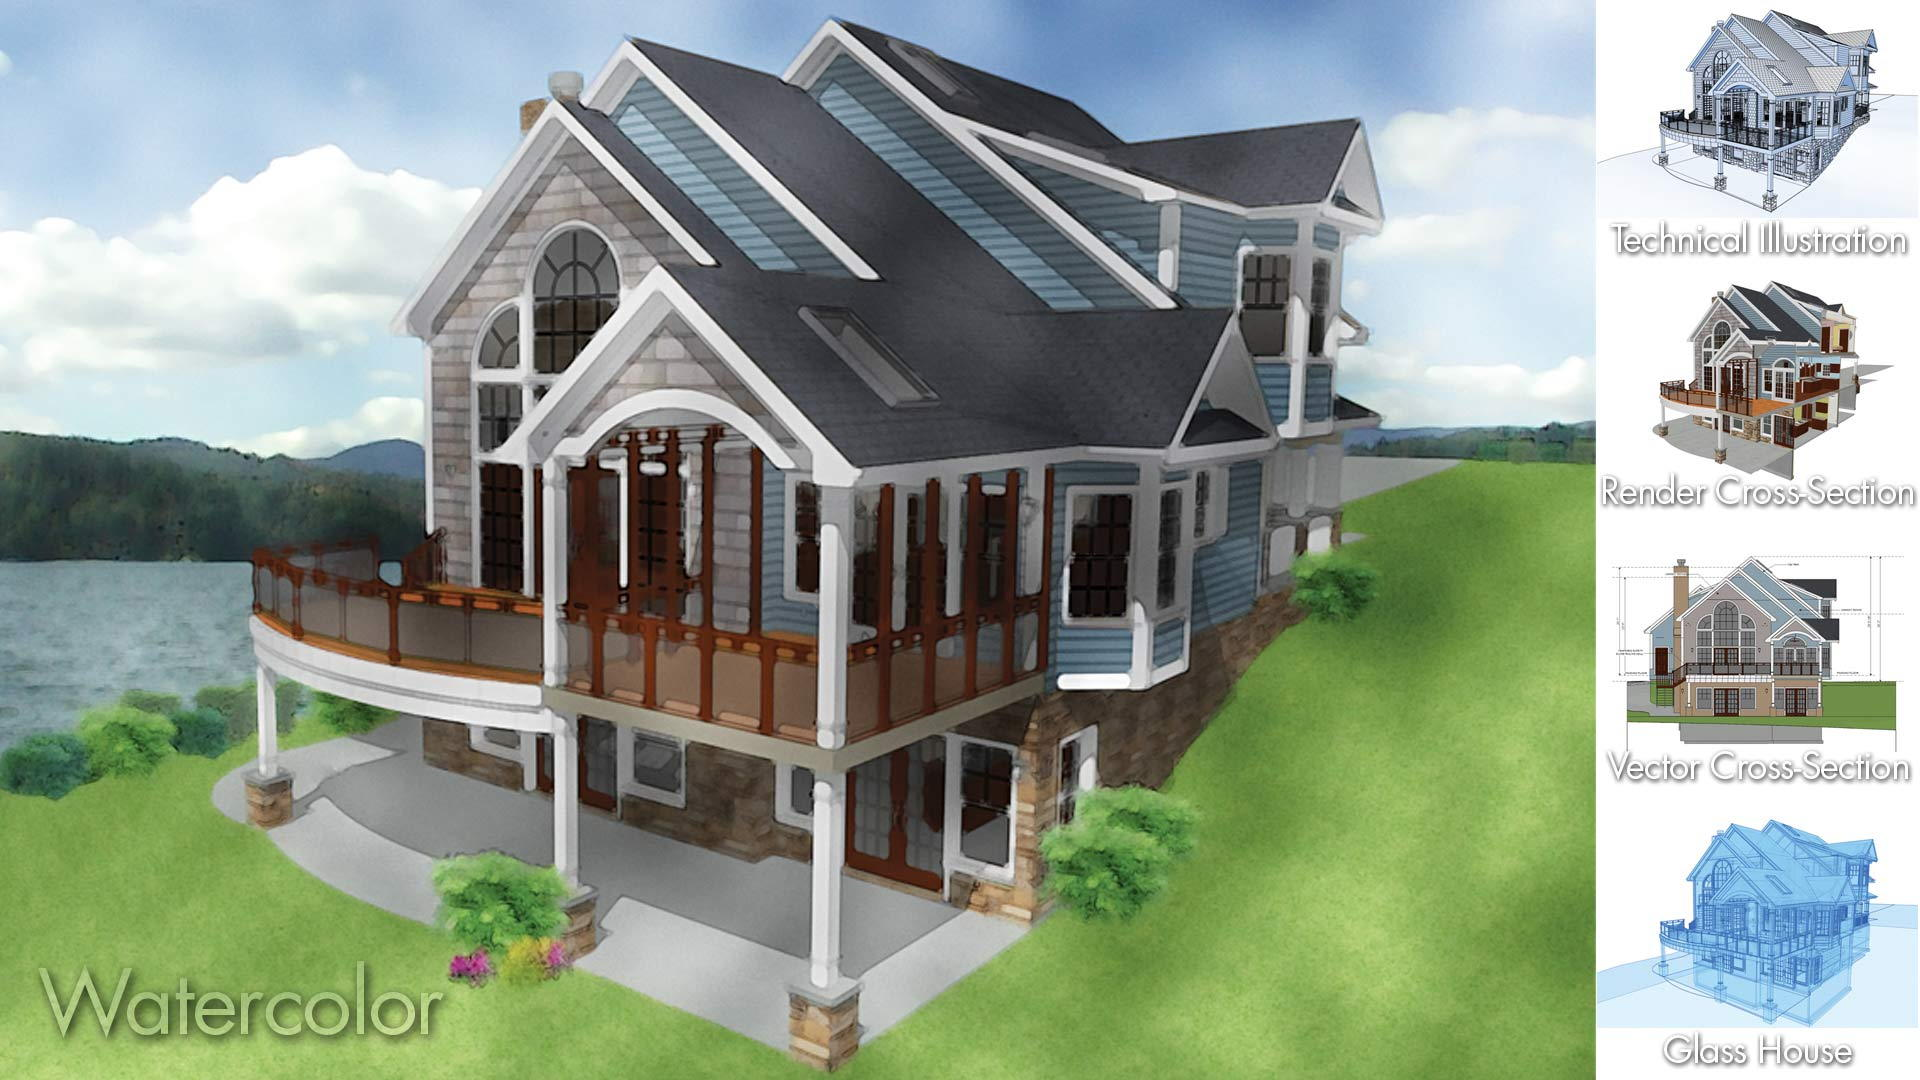 Althome designs can be rendered in a variety of techniques including watercolor glass house slider sections and elevations with technical